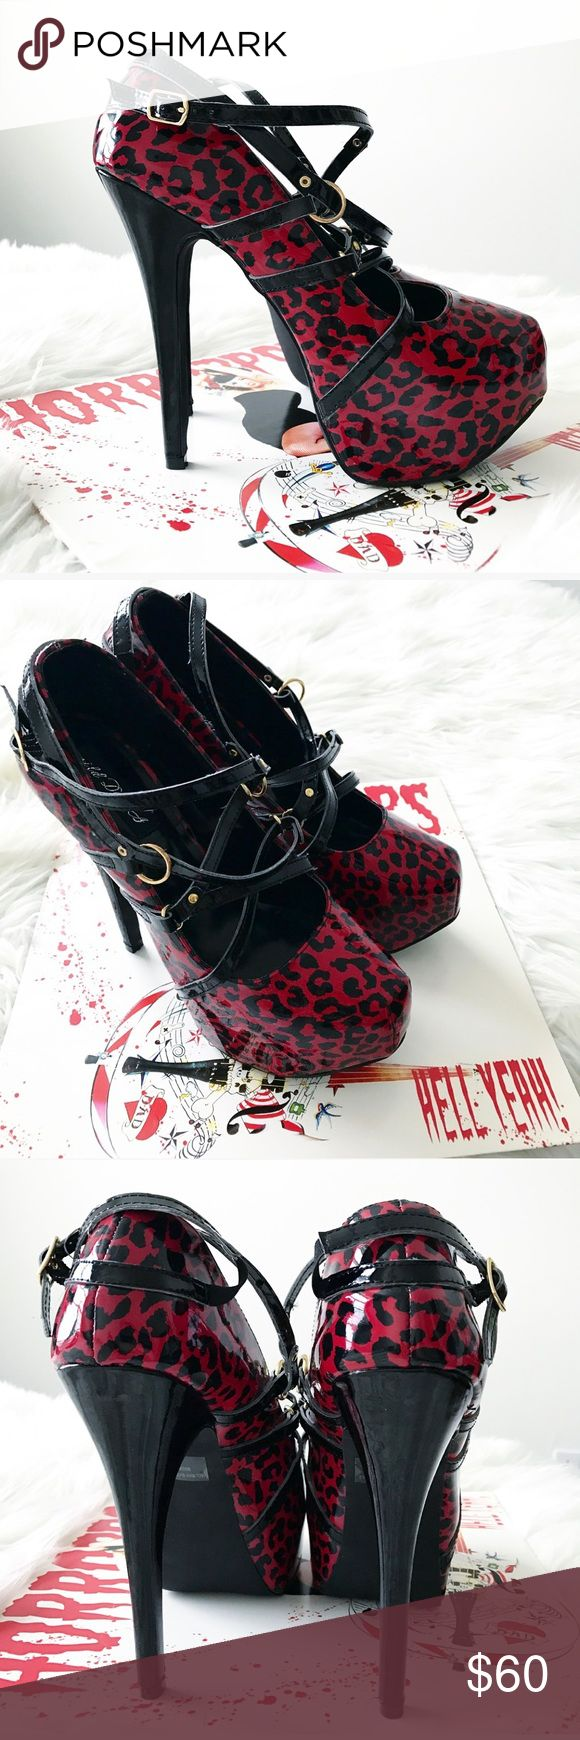 Red & Black strappy Leopard Glam Rocker Heels 8 New with box! Red leopard animal print strappy high heels by Wild DNA . Stilettos have a shiny appearance. Size 8 #platforms #platform #80s #rocker #glam #hair #metal #rocknroll #goth #rock #and #roll #gothic #1980s #punk #jem  #holograms #the #misfits Shoes Heels